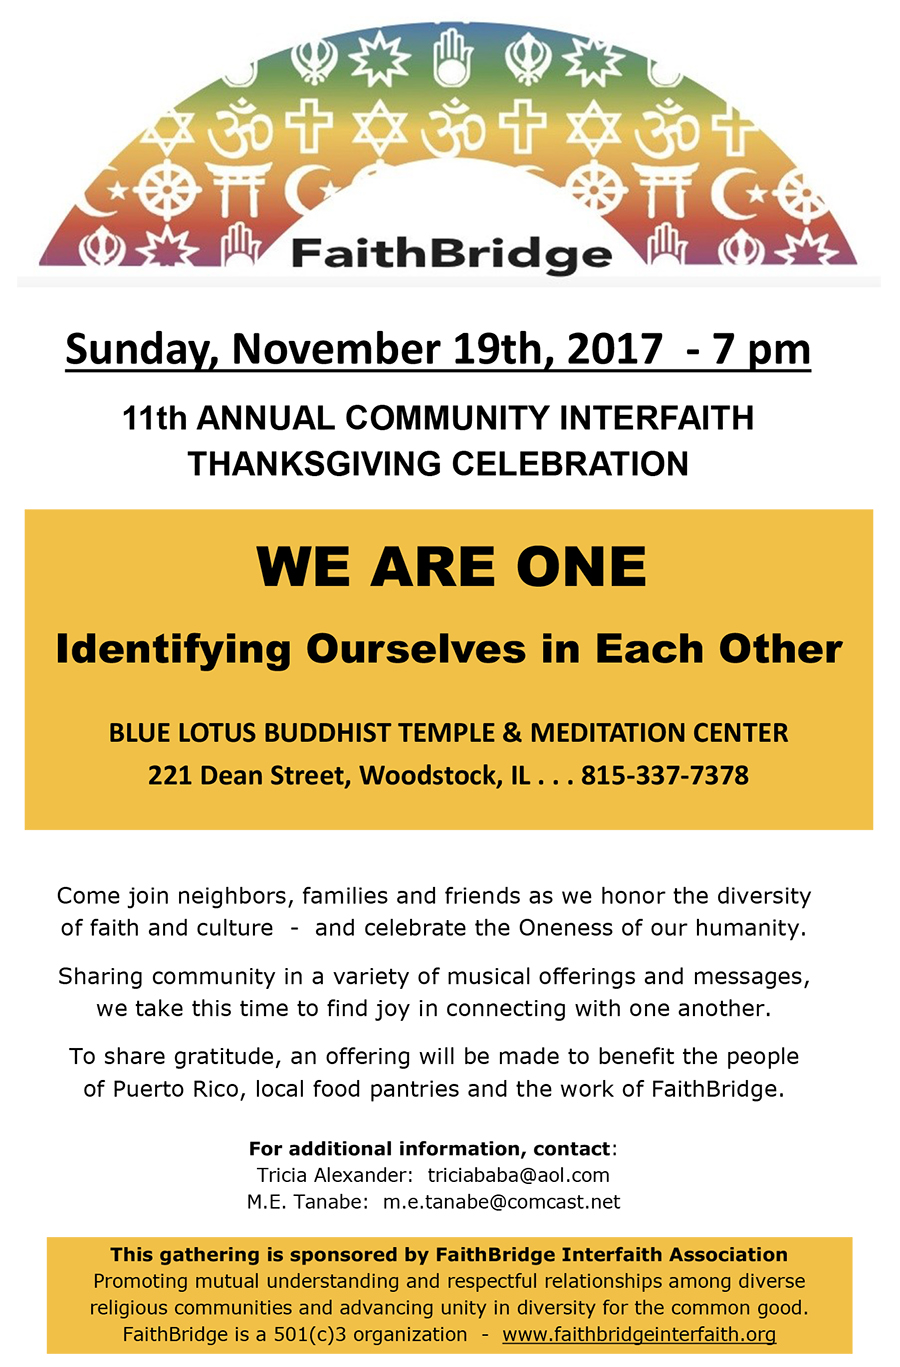 2017 faithbridge tg flyer sefeky